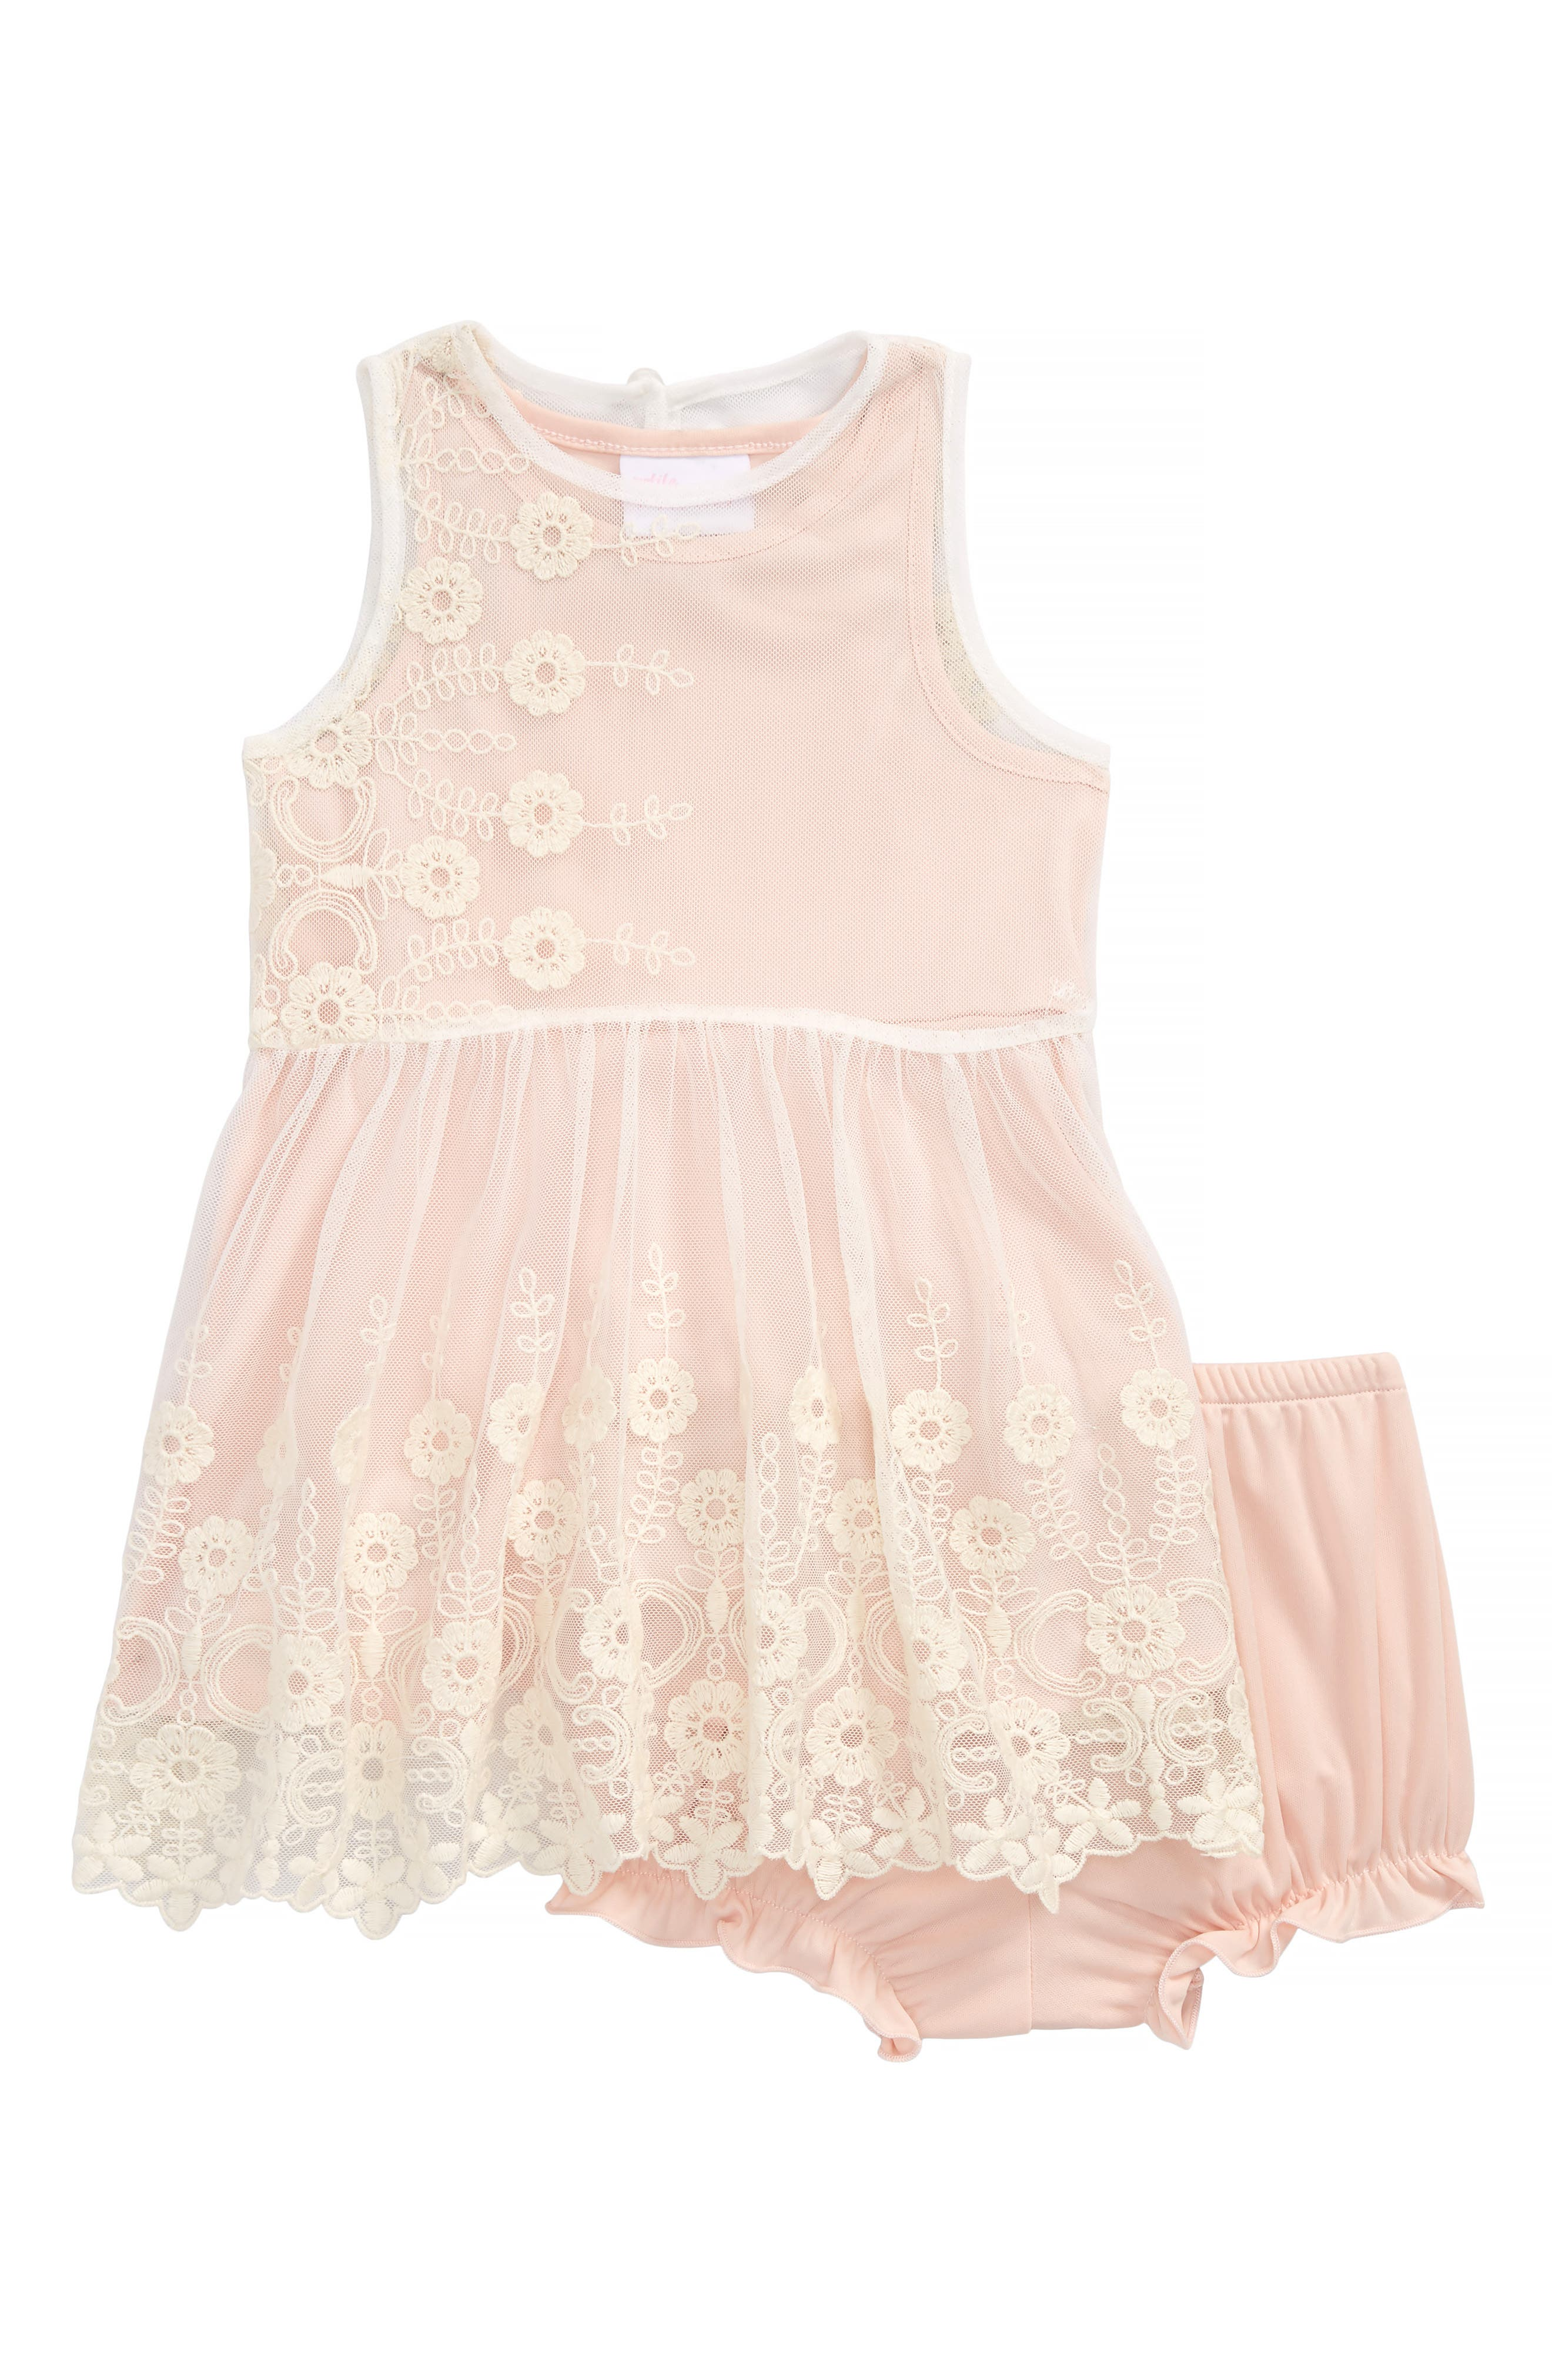 Flower Embroidered Sleeveless Dress,                             Main thumbnail 1, color,                             651